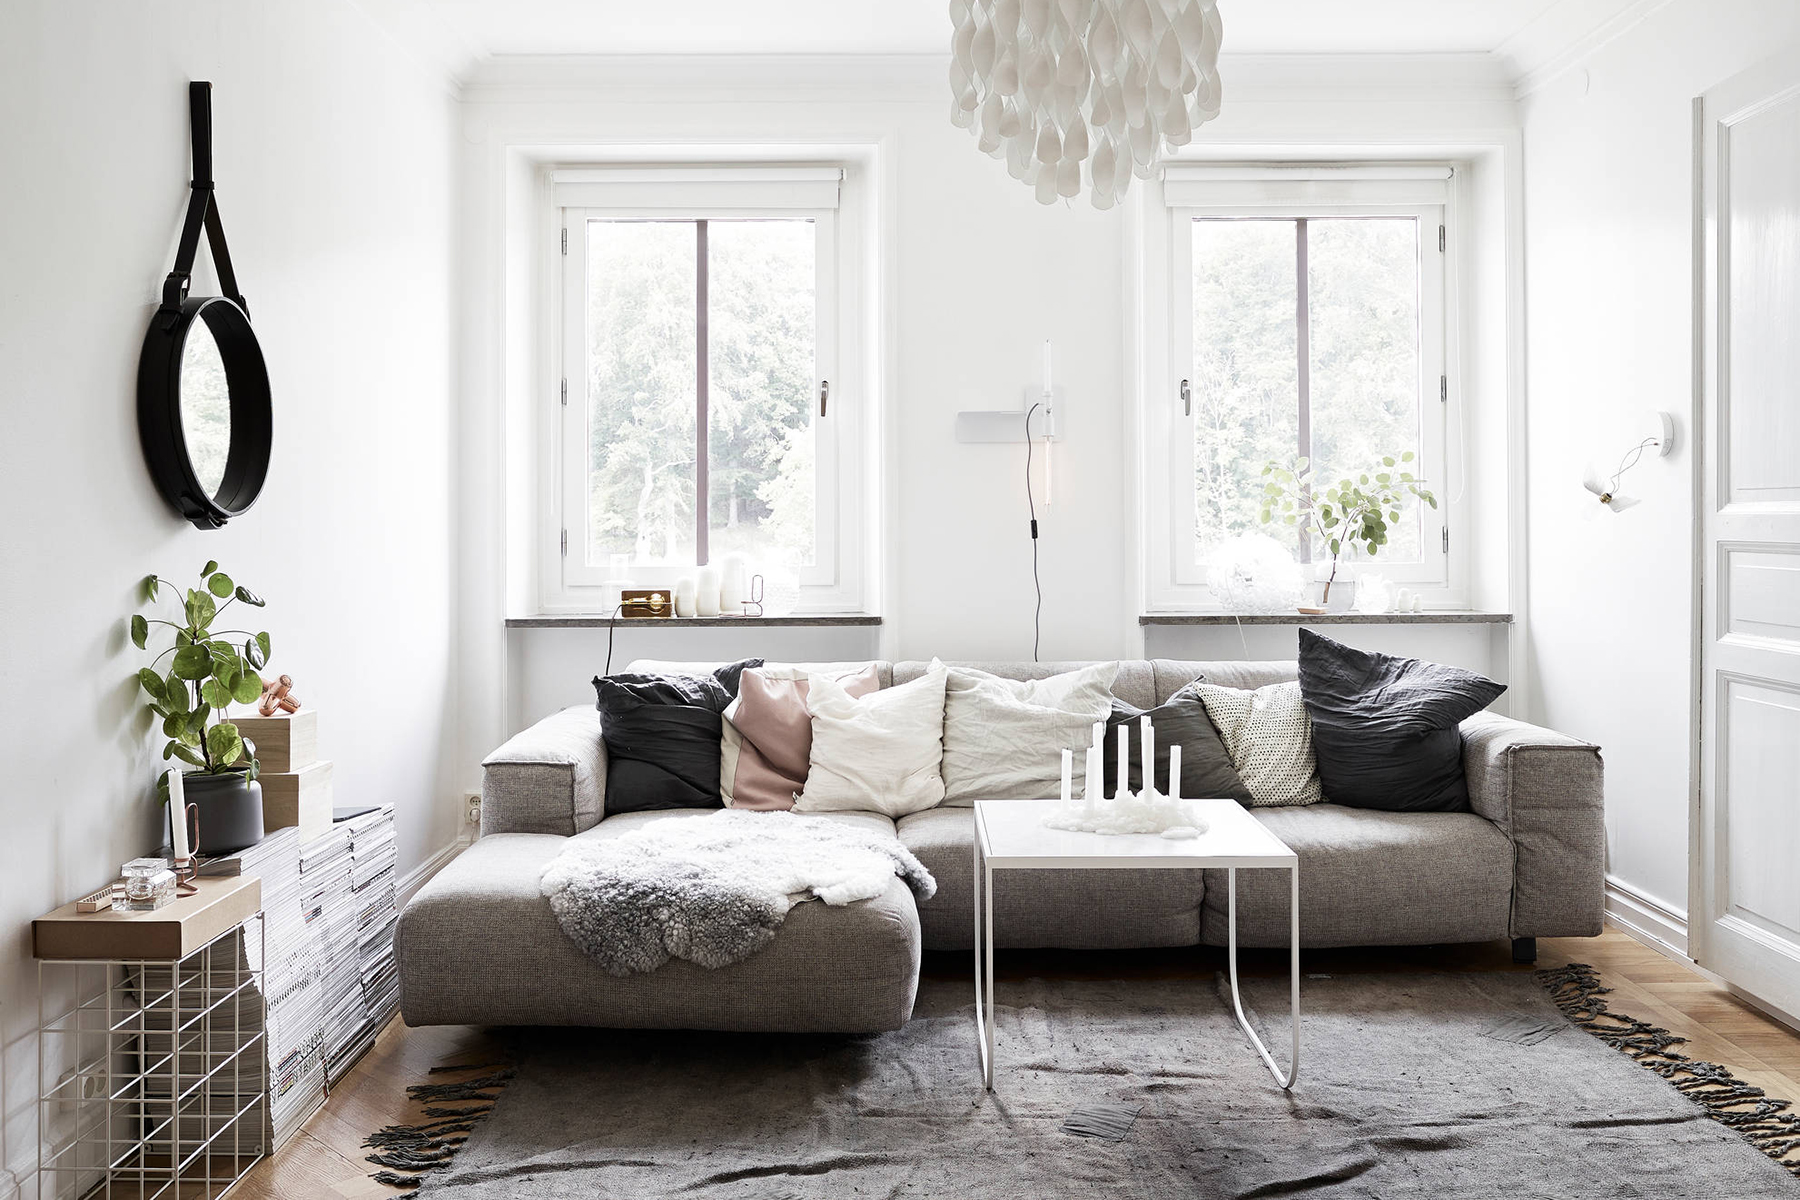 Top 10 Tips for Adding Scandinavian Style to Your Home | Happy ...